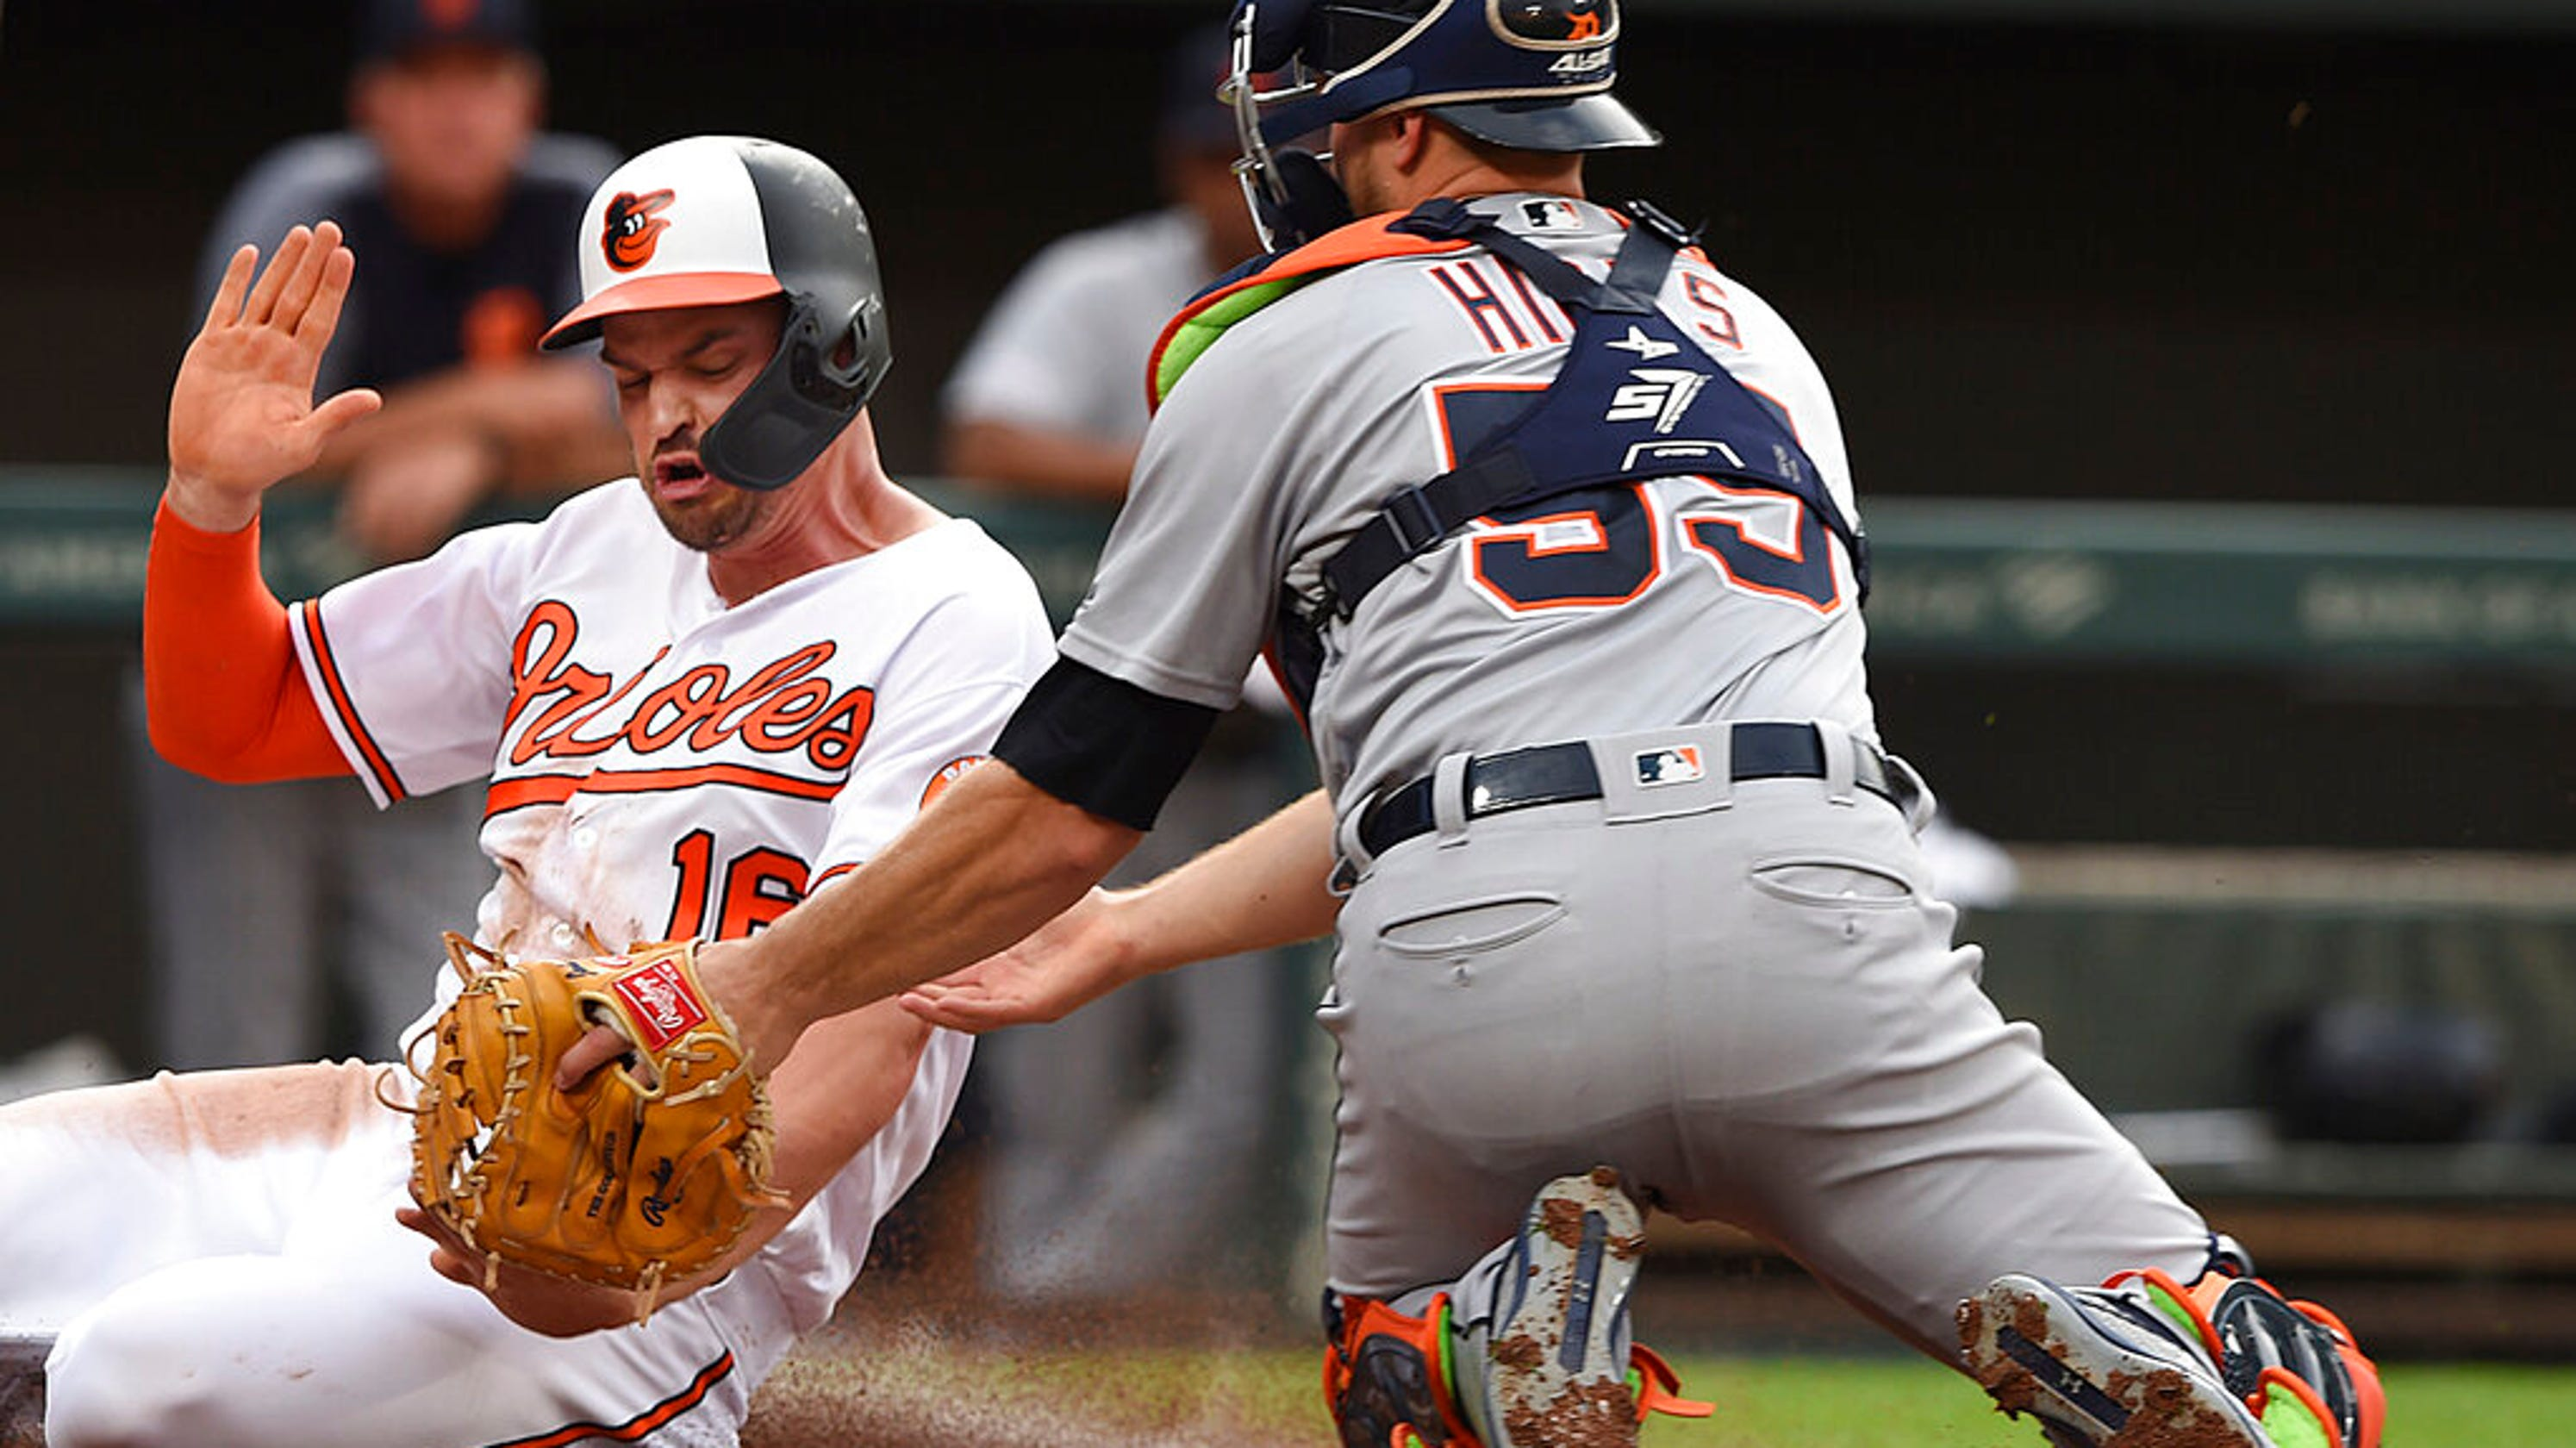 Detroit Tigers' push for No 1 pick could come down to O's games